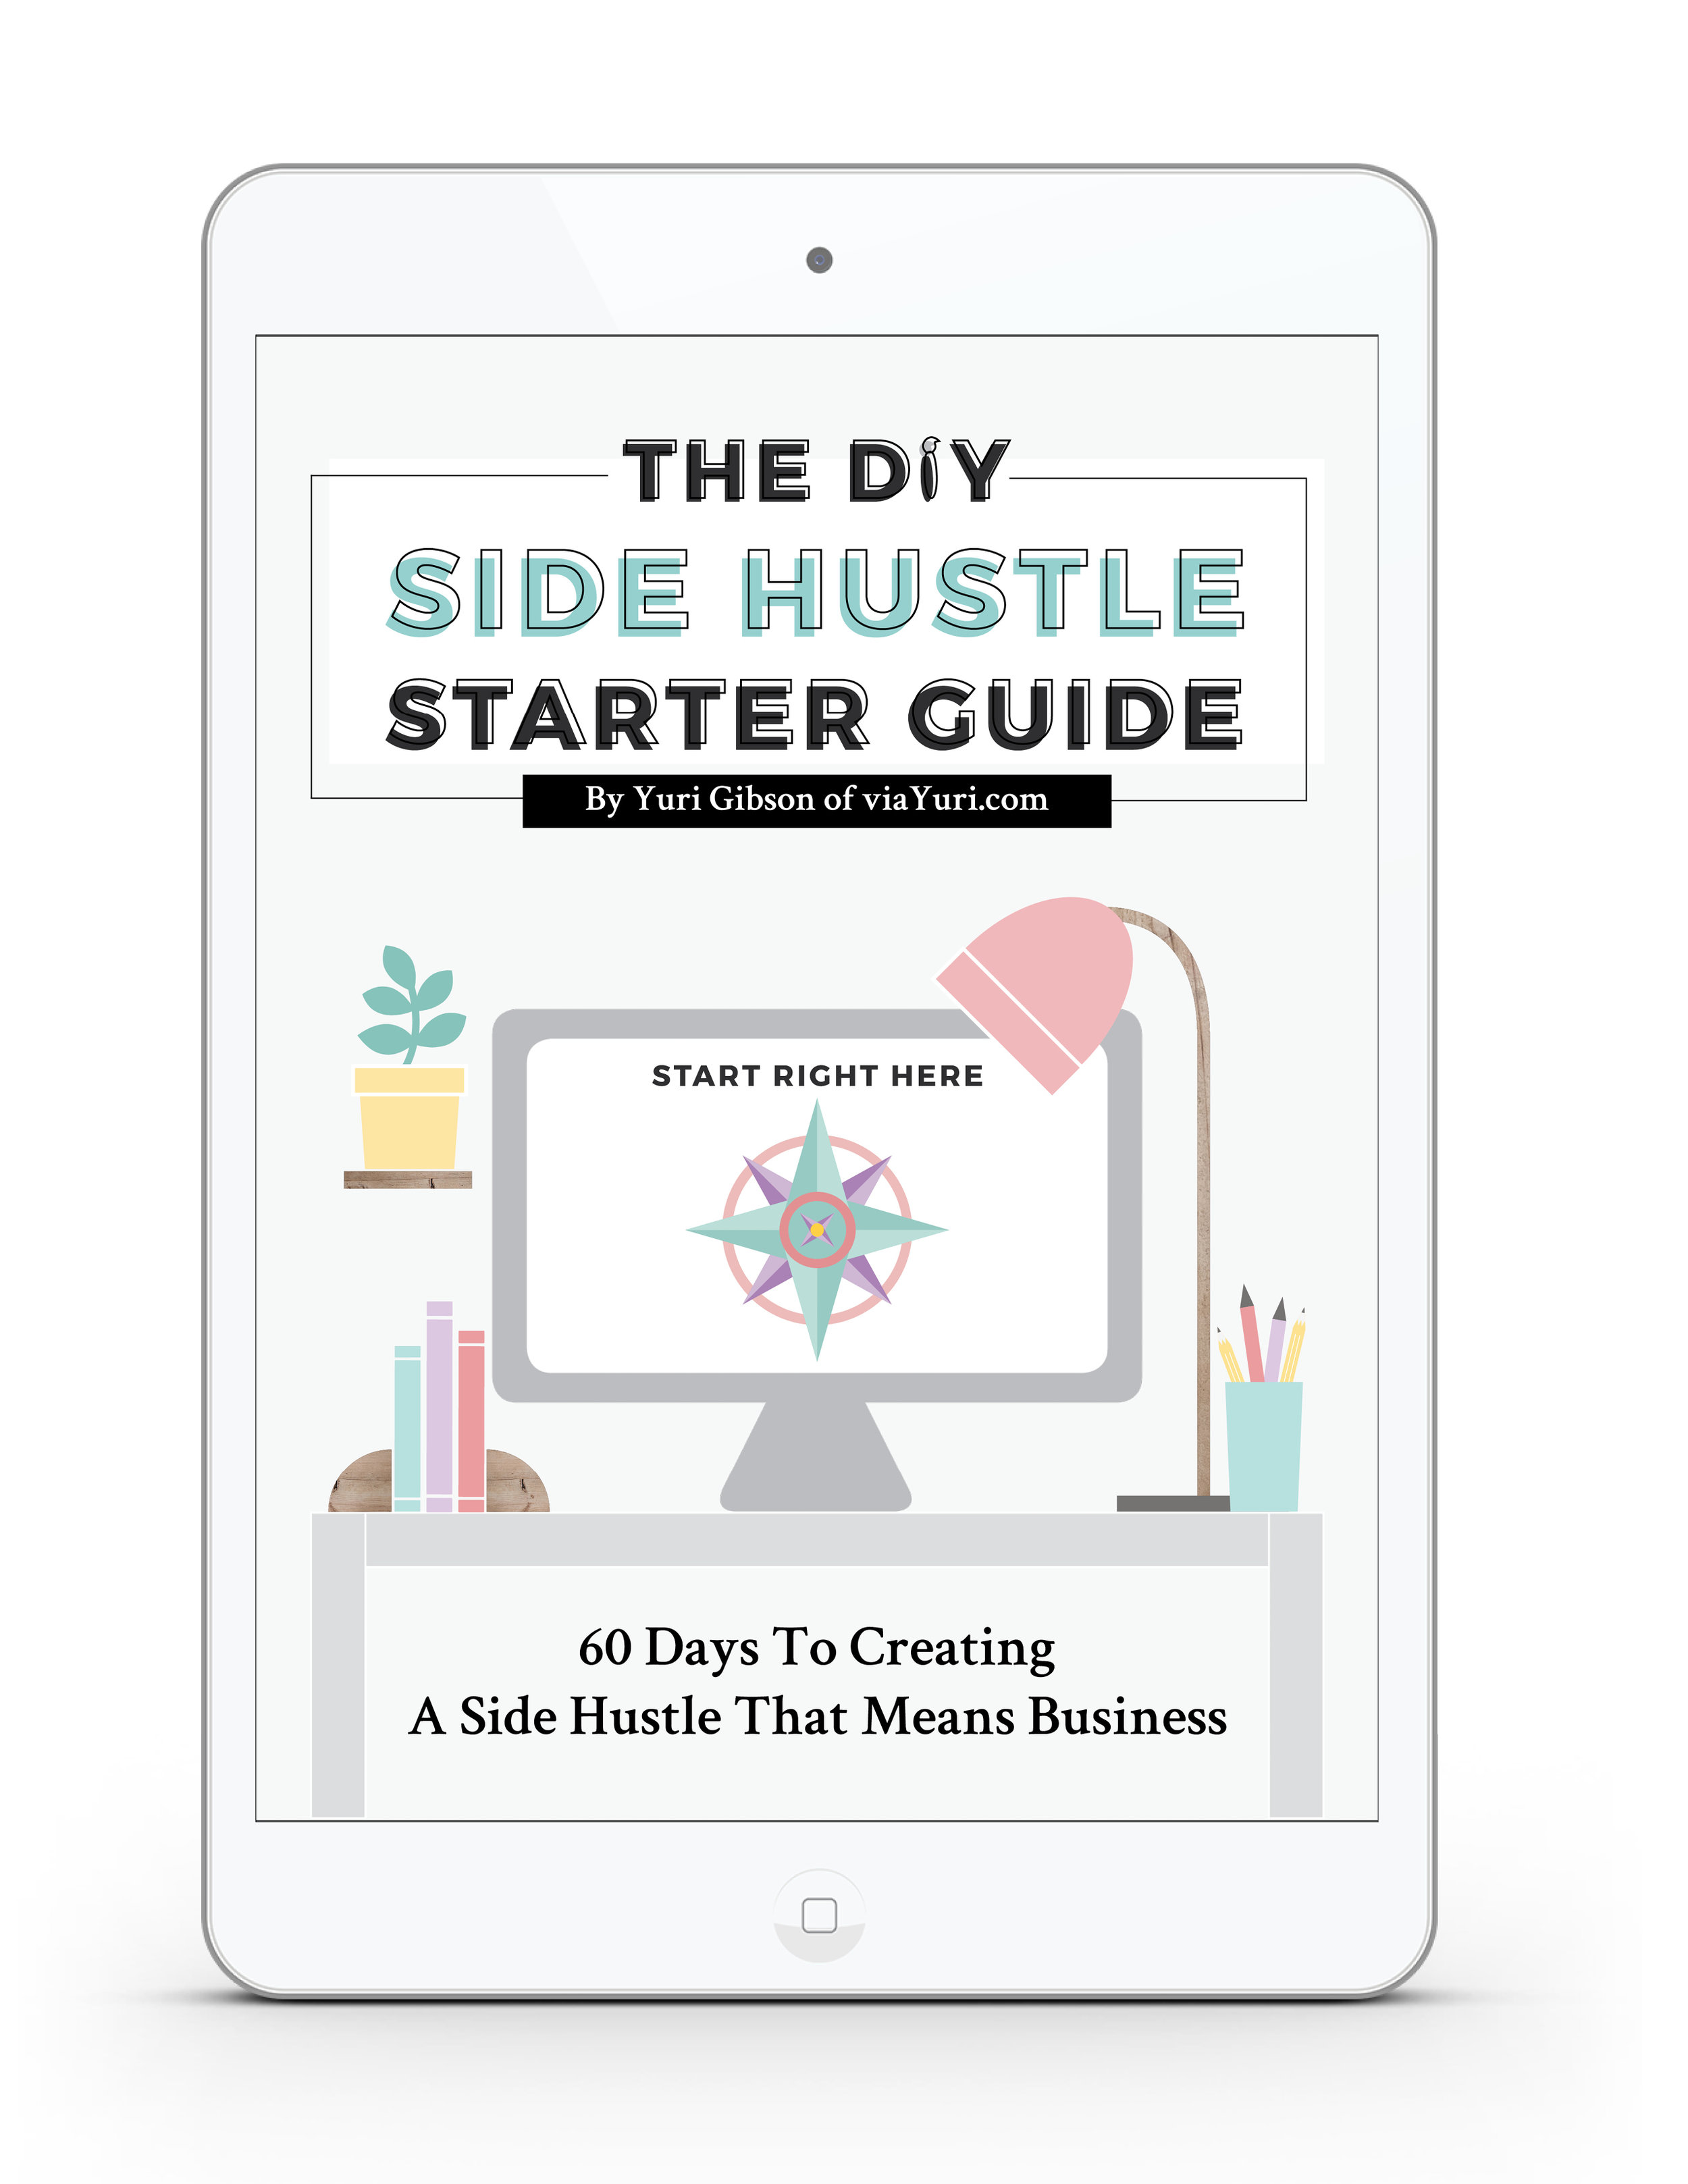 The DIY Side Hustle Starter Guide: 60 Days to Creating a Side Hustle that means Business   from Yuri Gibson of viaYuri.com